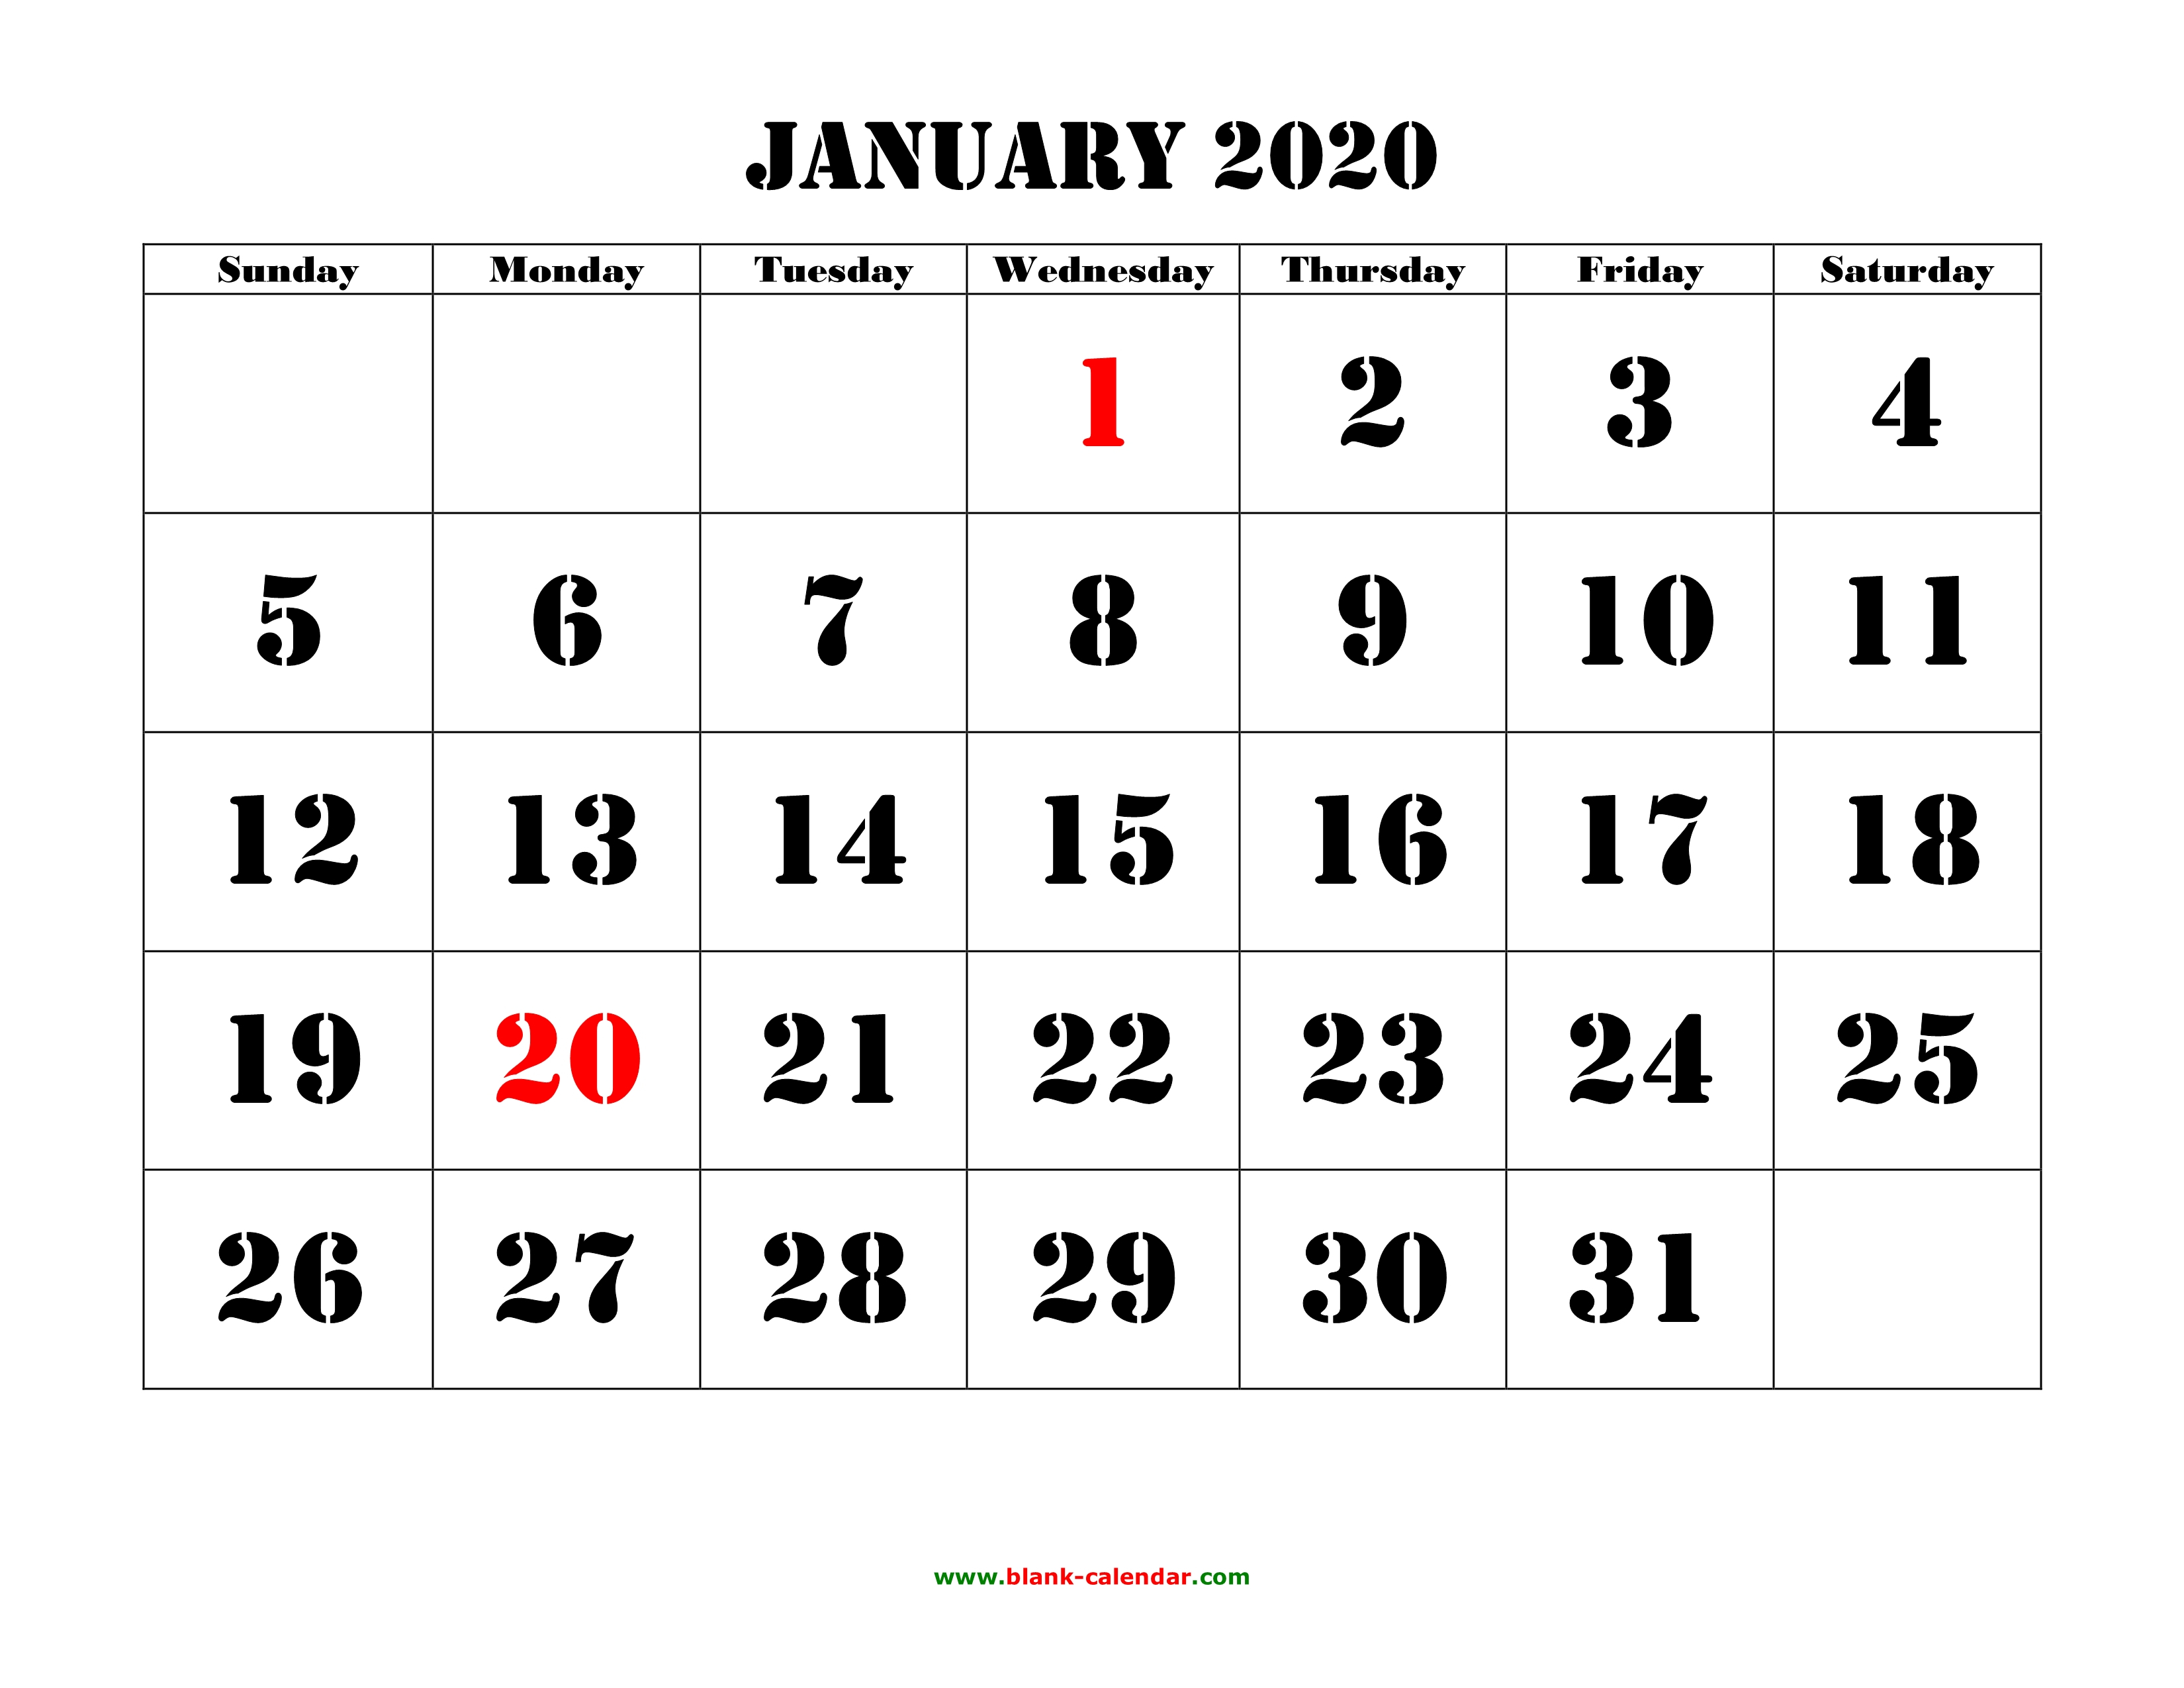 Free Download Printable Calendar 2020, Large Font Design , Holidays for Print Free 2020 Calendars Without Downloading